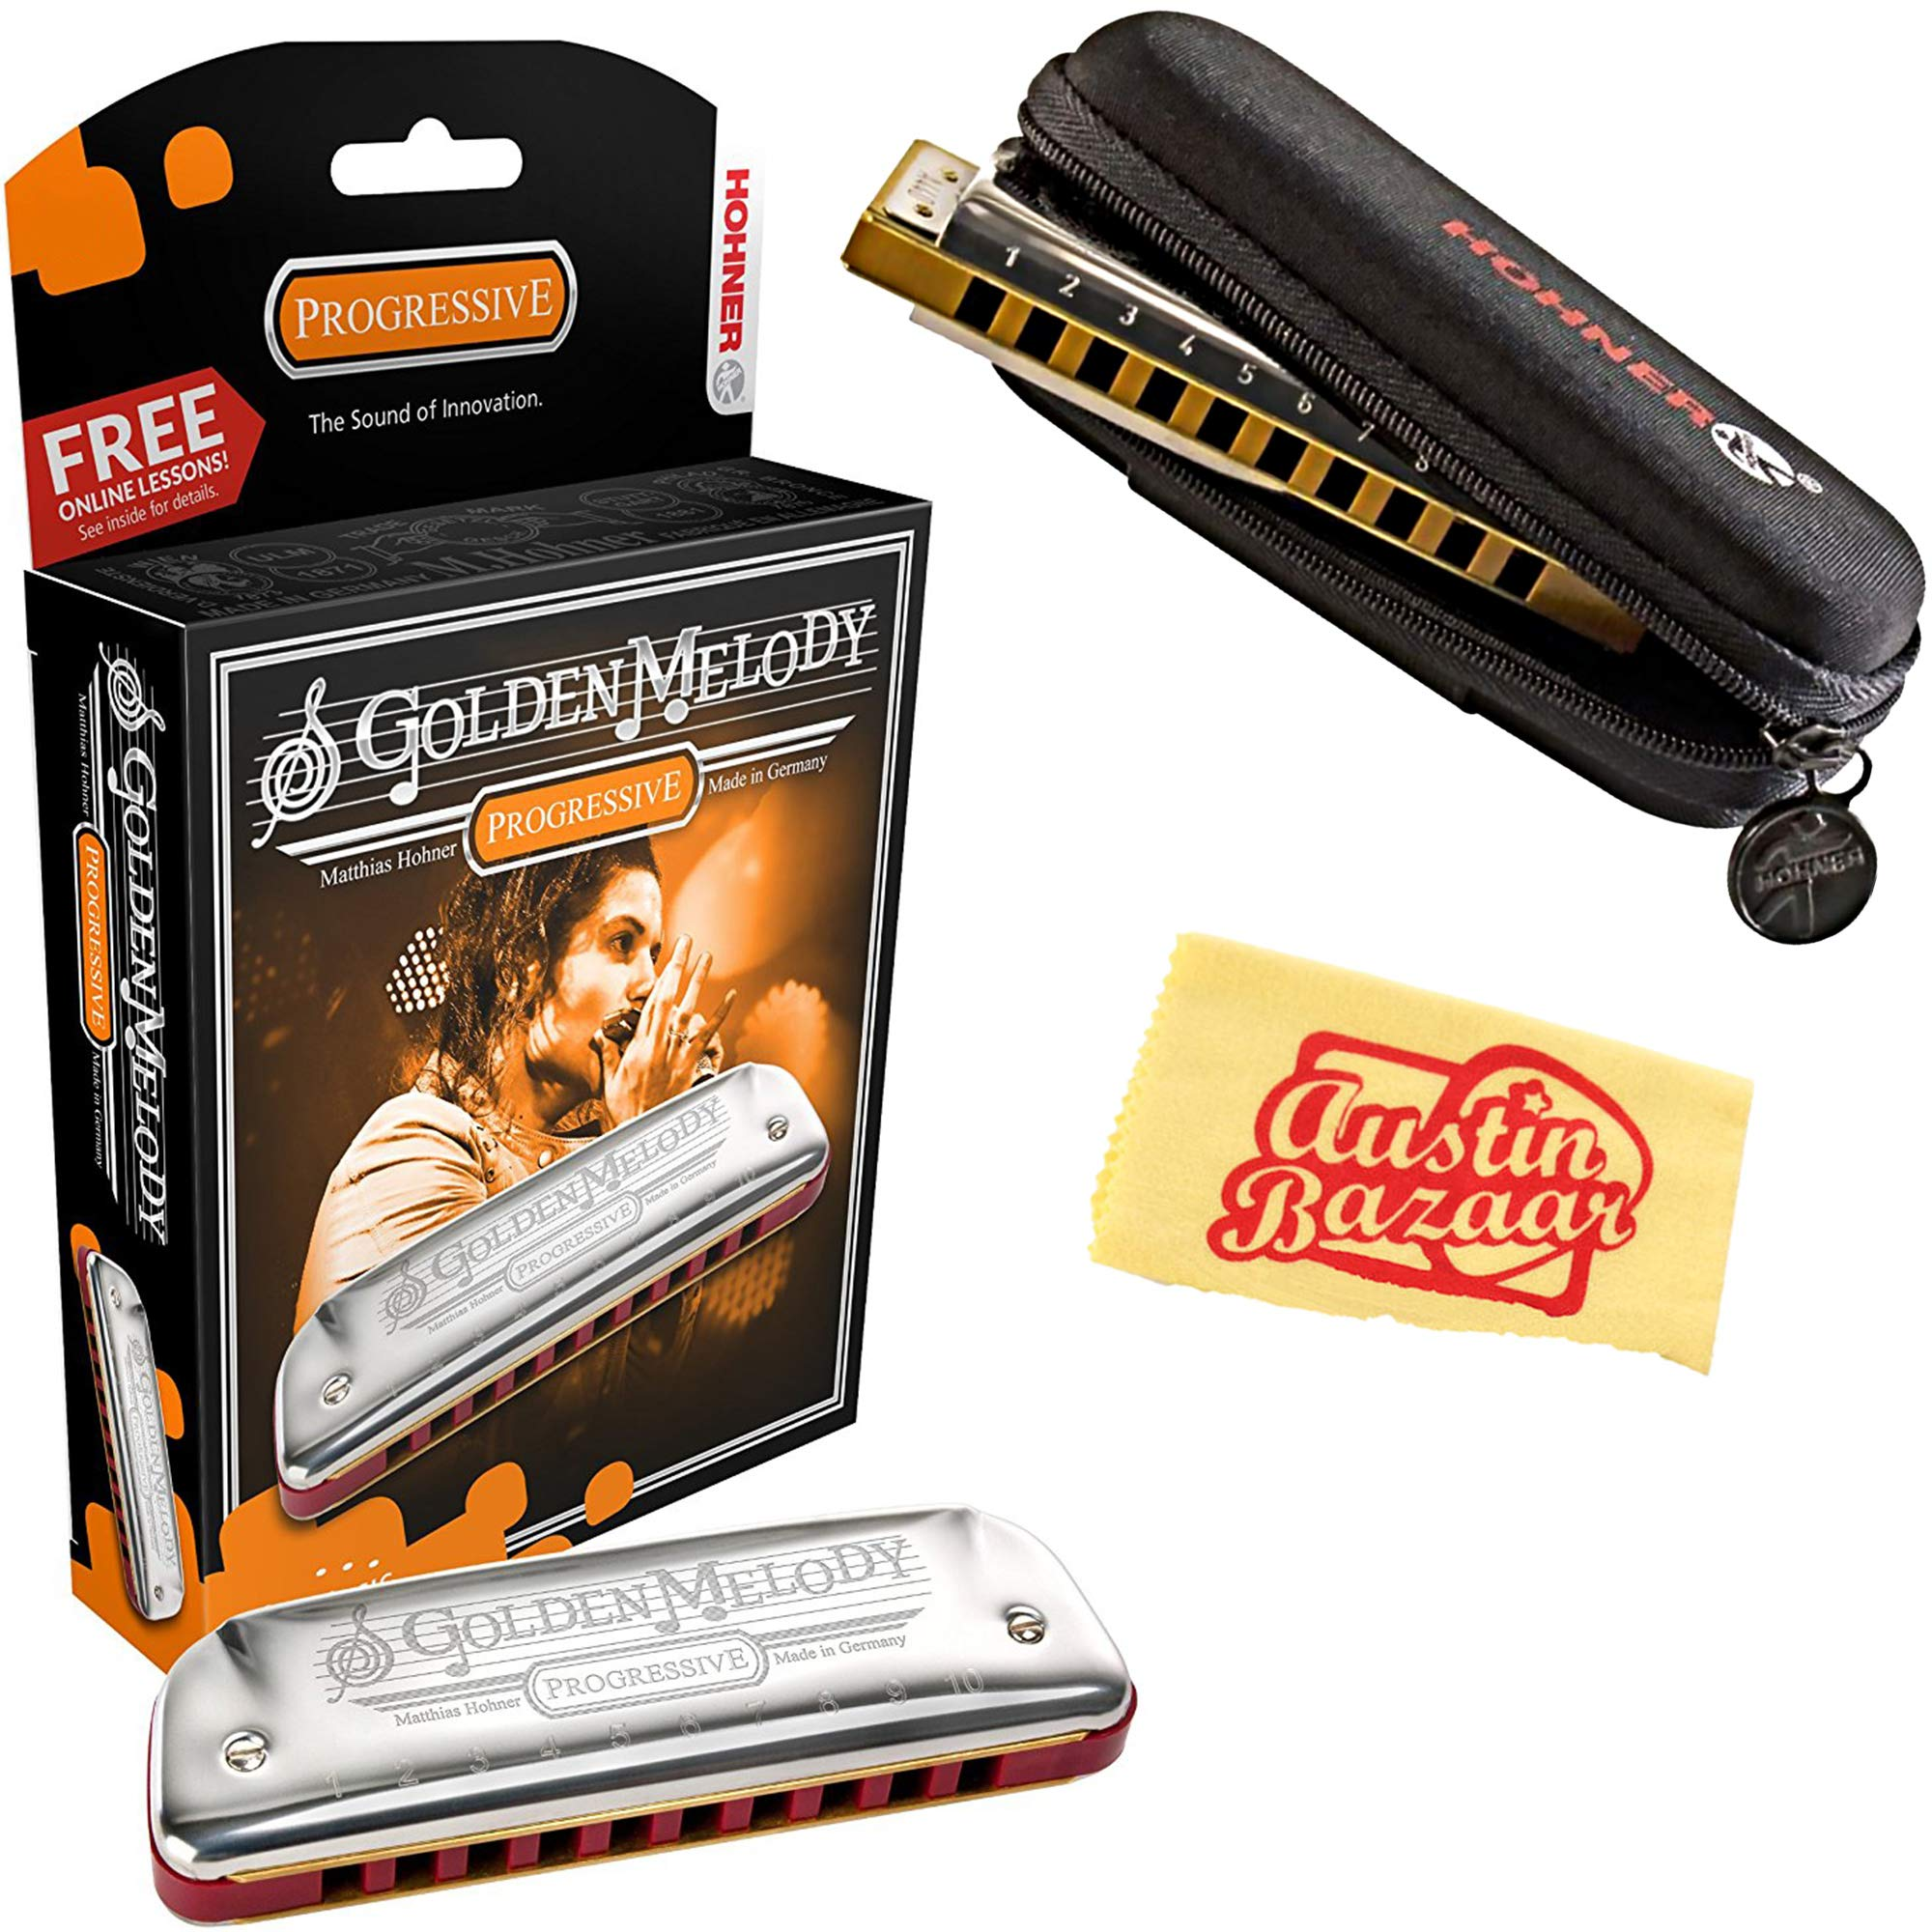 Hohner 542 Golden Melody Harmonica - Key of C Bundle with Carrying Case and Austin Bazaar Polishing Cloth